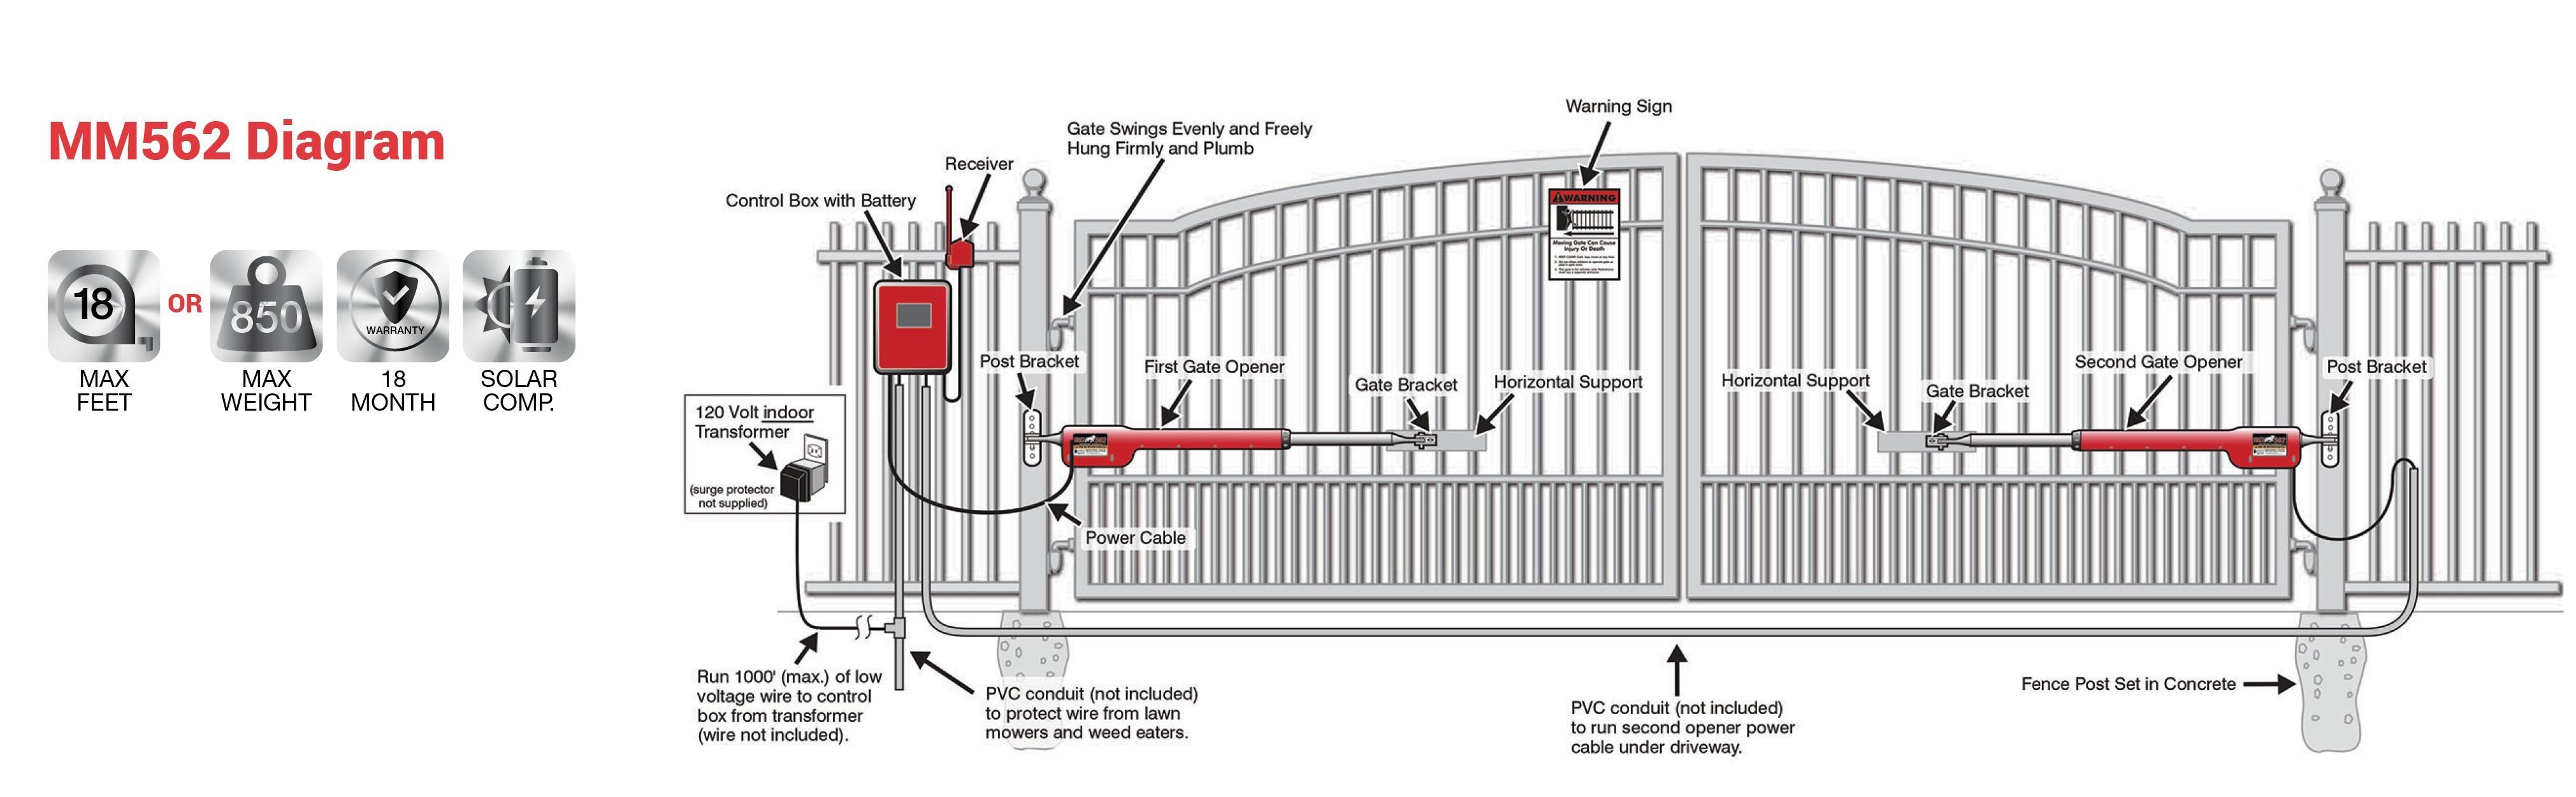 Pleasing Gate Actuator Wiring Diagram Wiring Diagram Wiring Digital Resources Bemuashebarightsorg